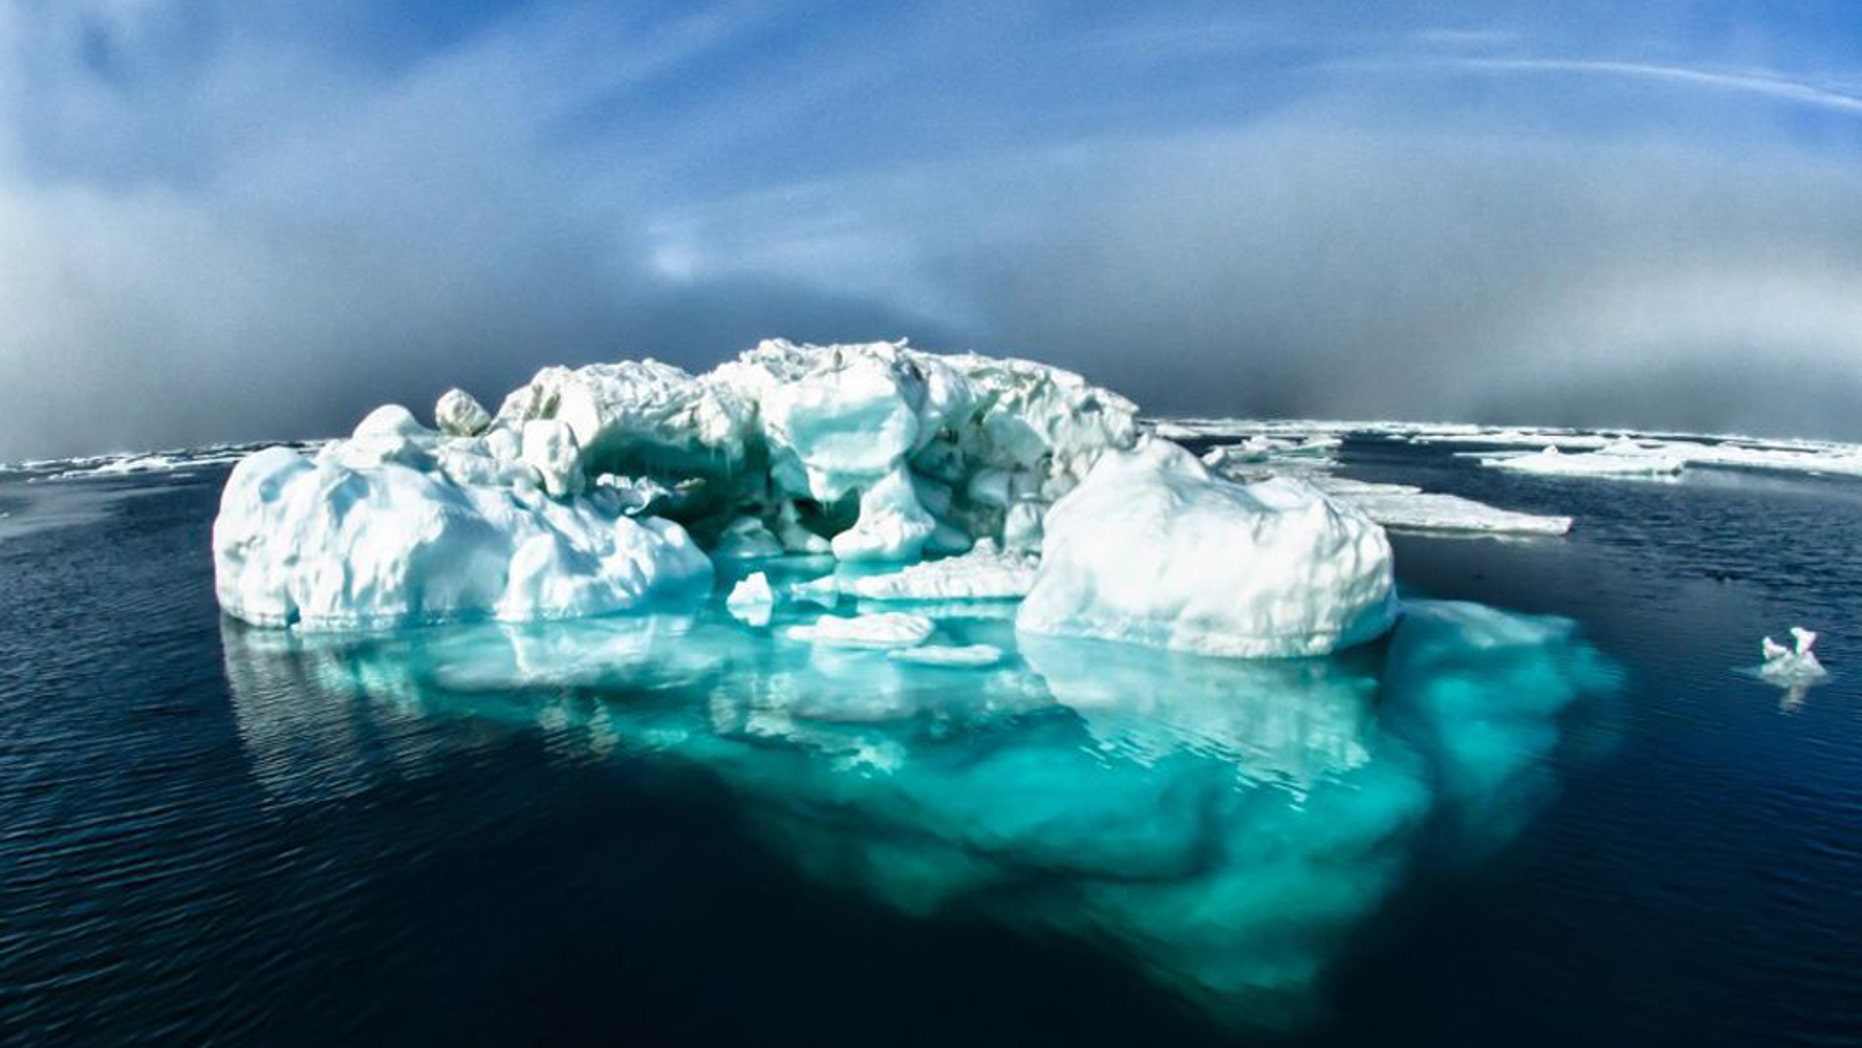 The most substantial deposits of Arctic sea ice are swiftly disappearing. (Credit: NOAA)